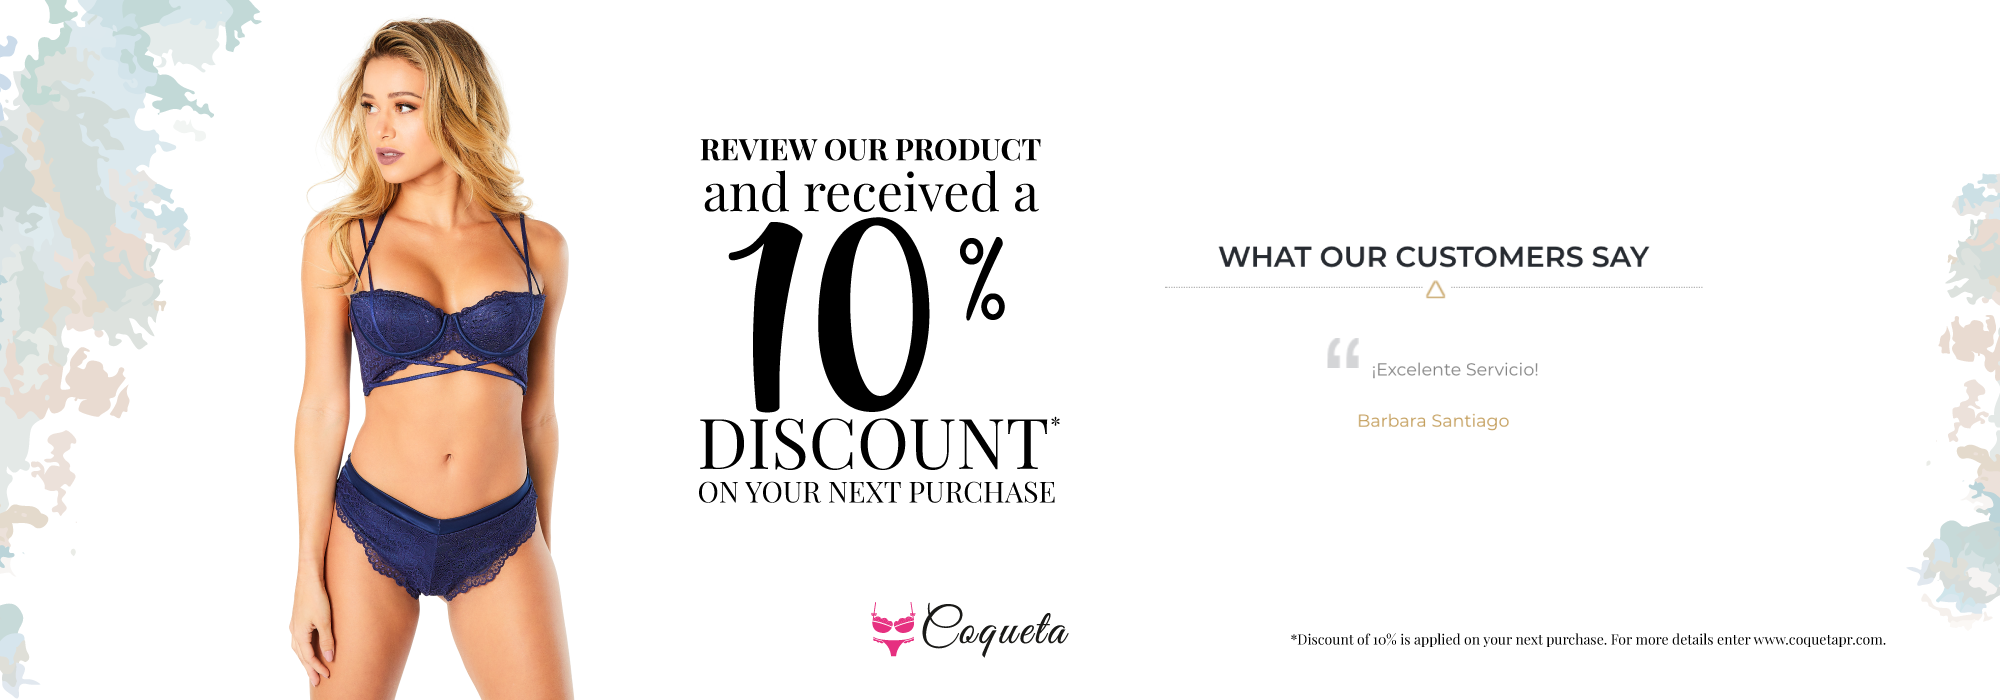 2f94b4c59 Lingerie for women of all shapes and sizes. - Coqueta